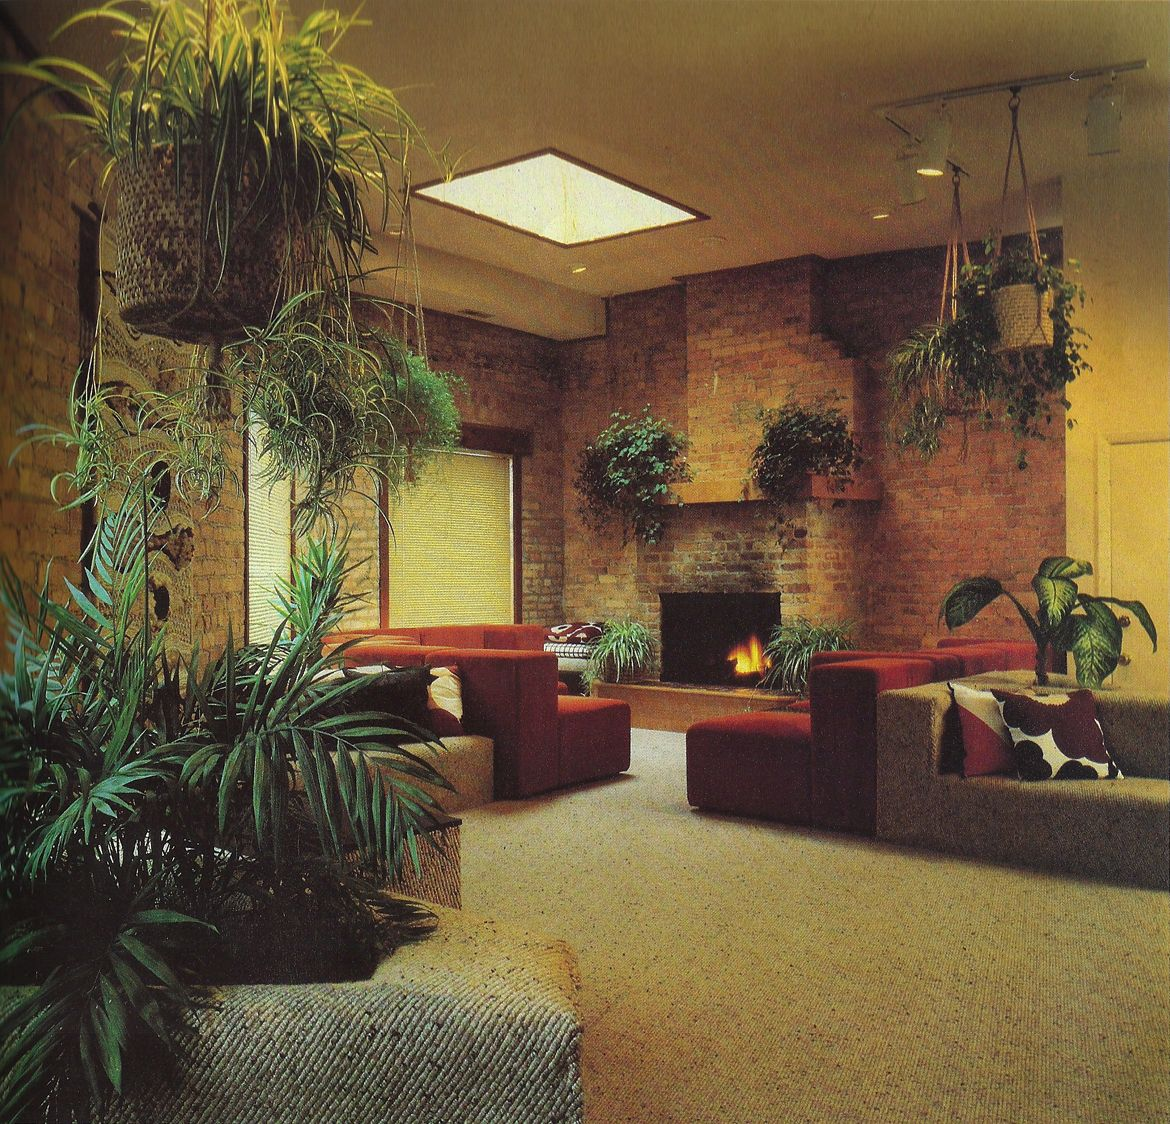 Interior Decorating Ideas For The Better Look: Better Homes And Gardens New Decorating Book, 1981